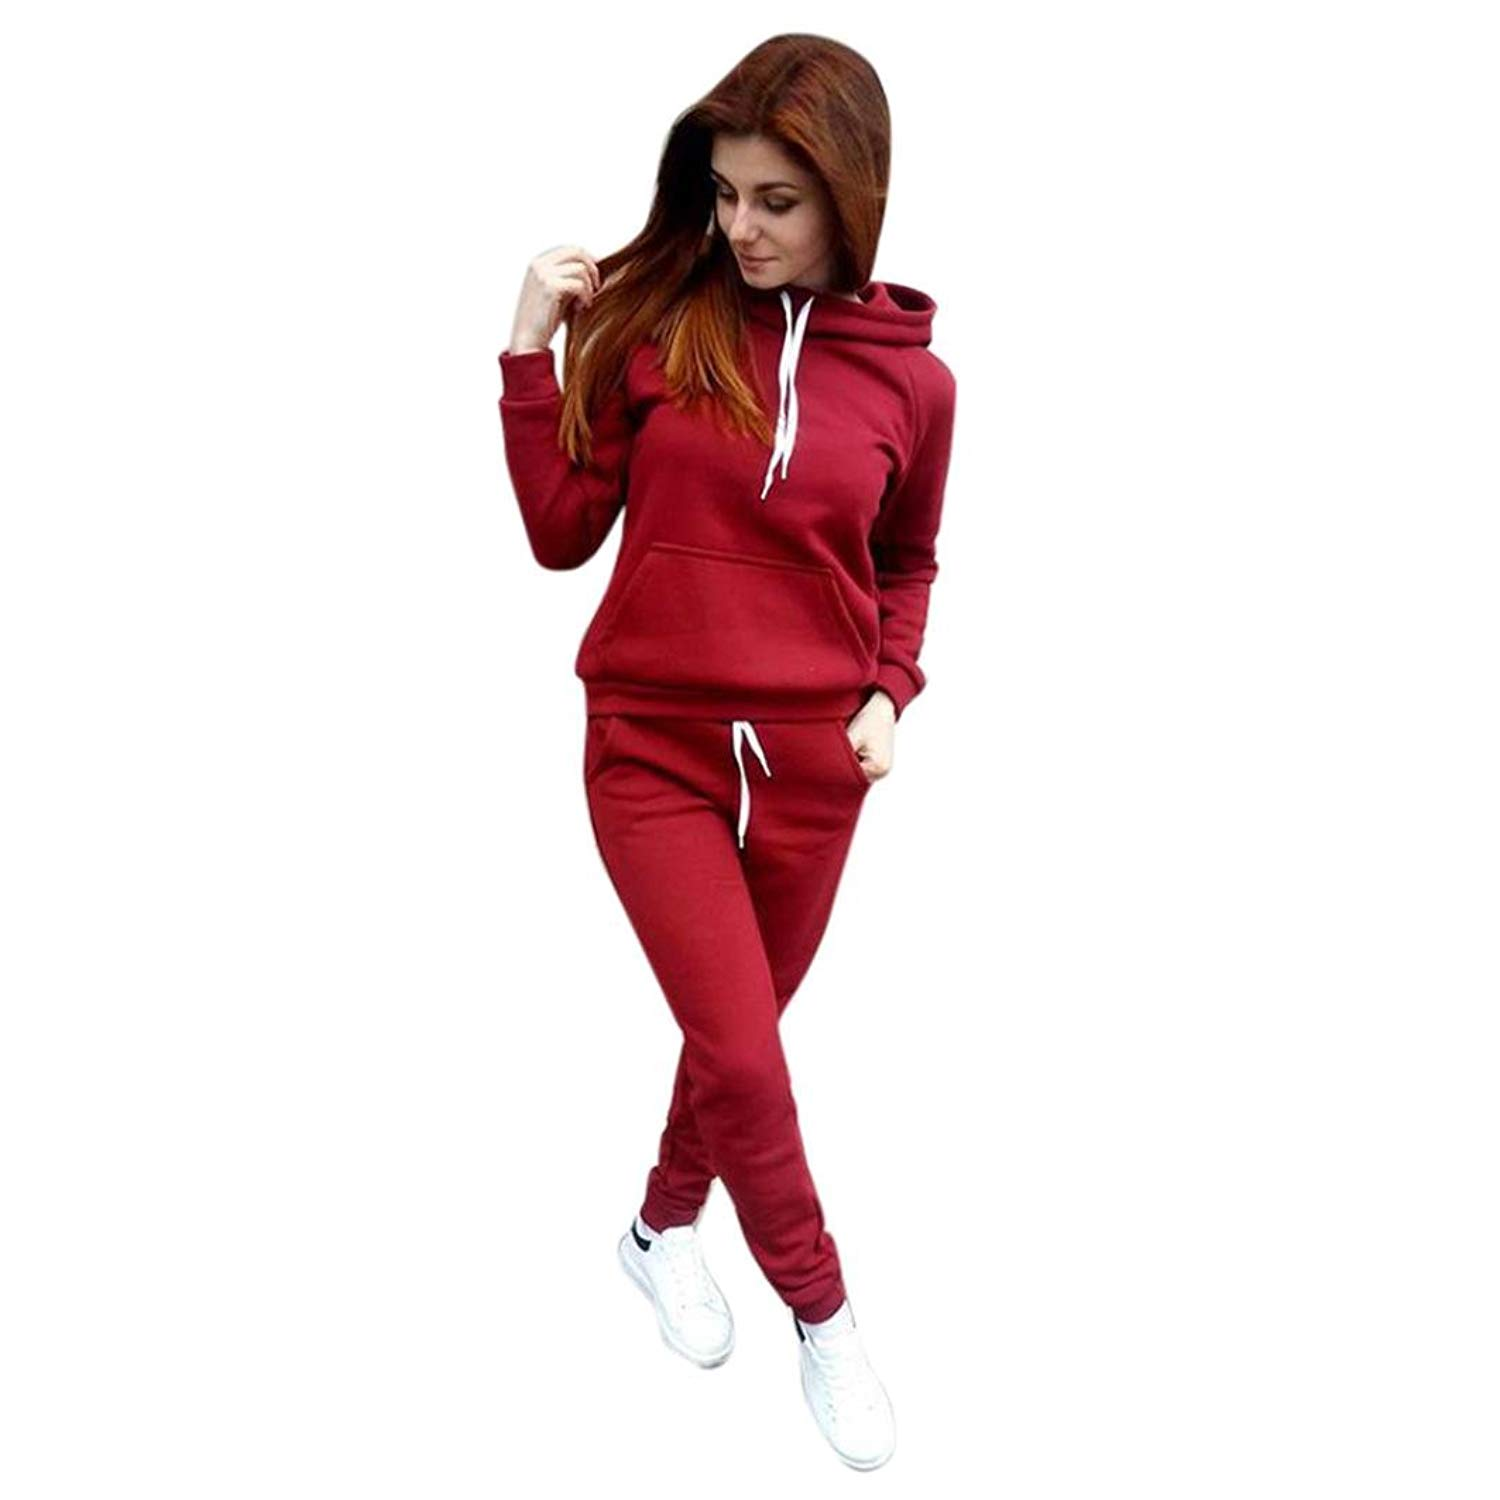 8eaec710fd5064 Get Quotations · Sport Tracksuits Women,NOMENI Women Hoodie Hooded  Sweatshirt and Long Pant Two-Piece Outfit